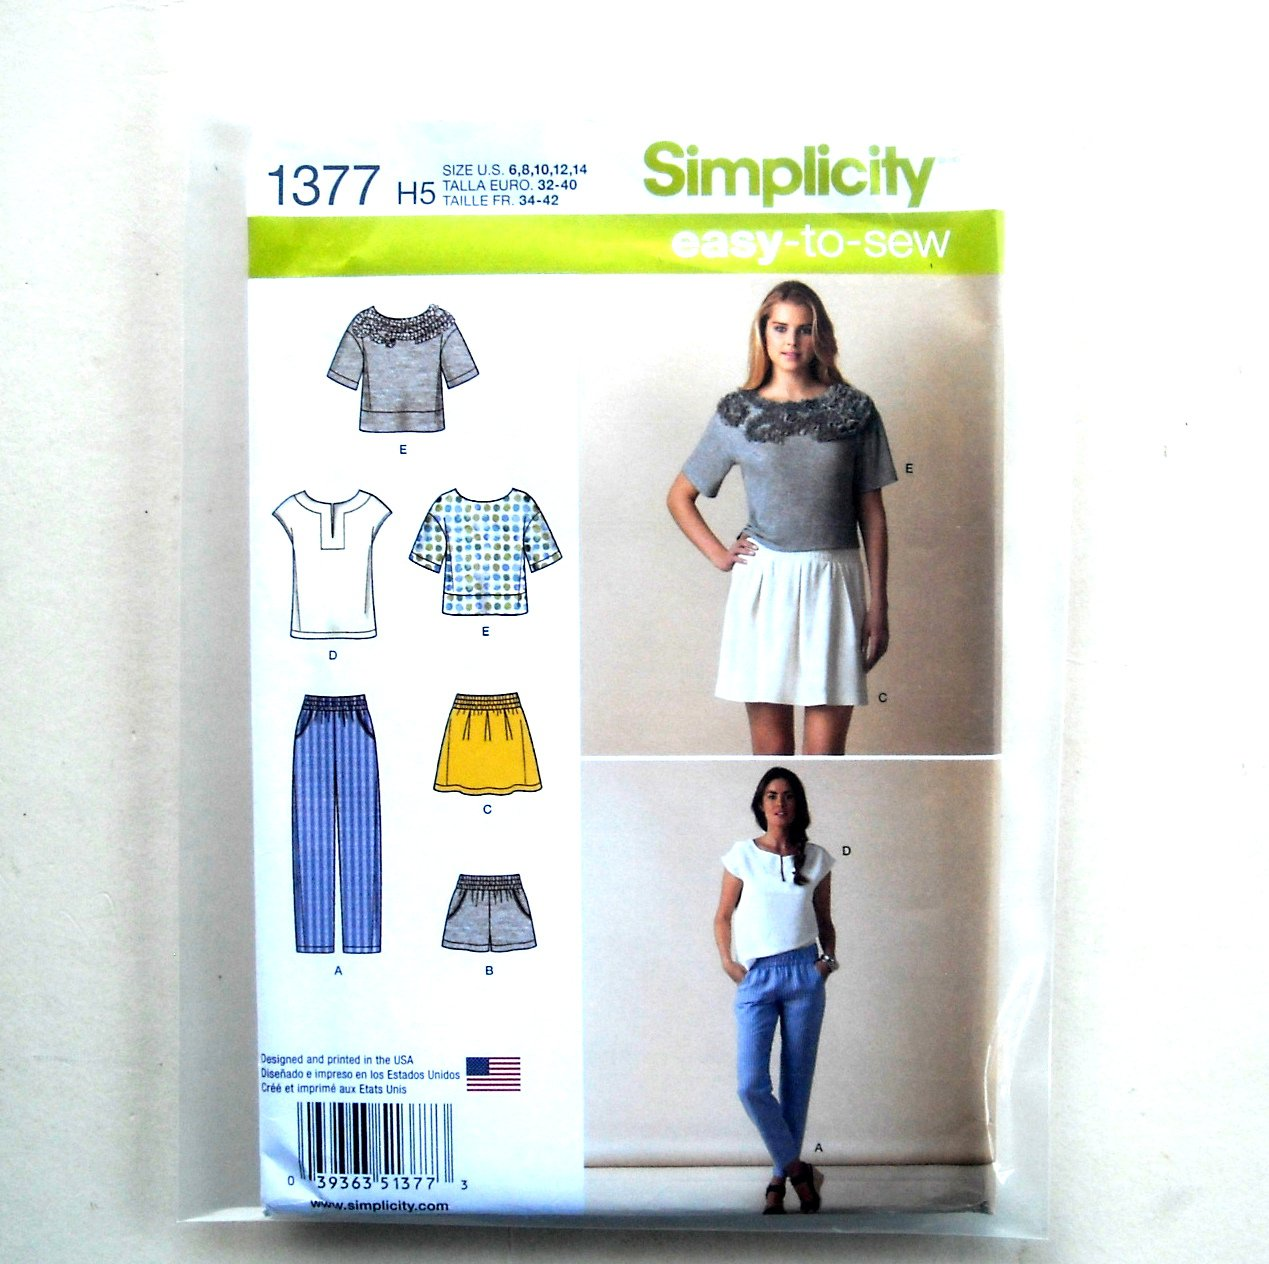 Misses Tops Pull On Bottoms 6 8 10 12 14 Simplicity Sewing Pattern 1377